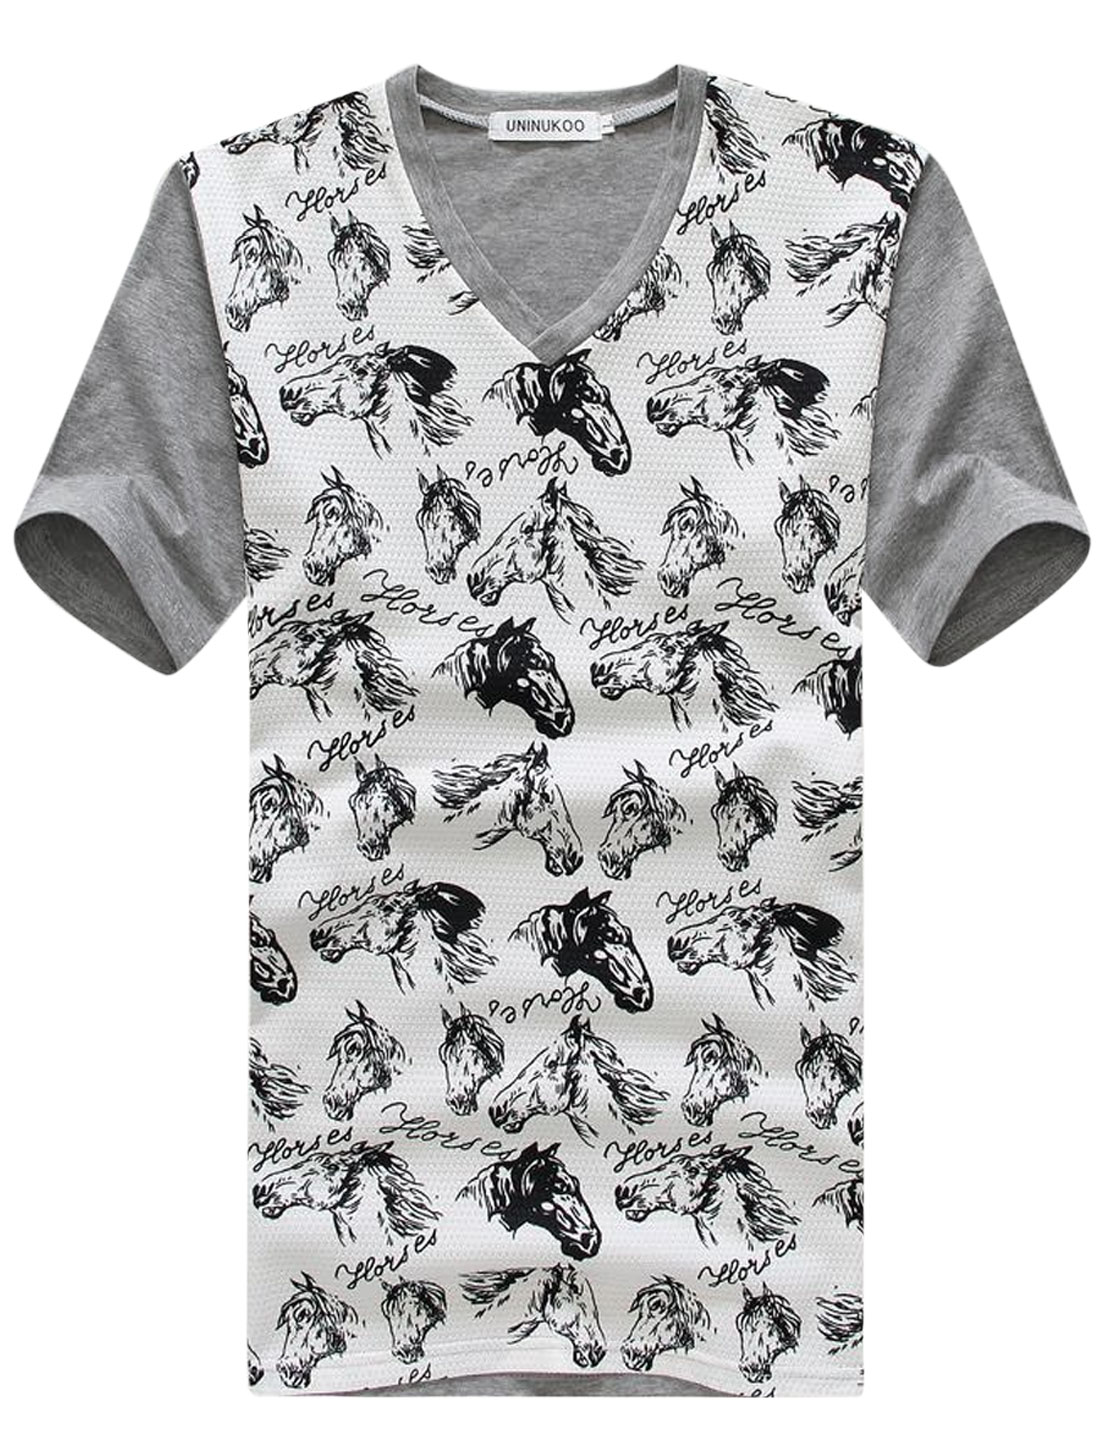 Pullover Horse Prints Panel Design Casual T-Shirt for Men Gray M